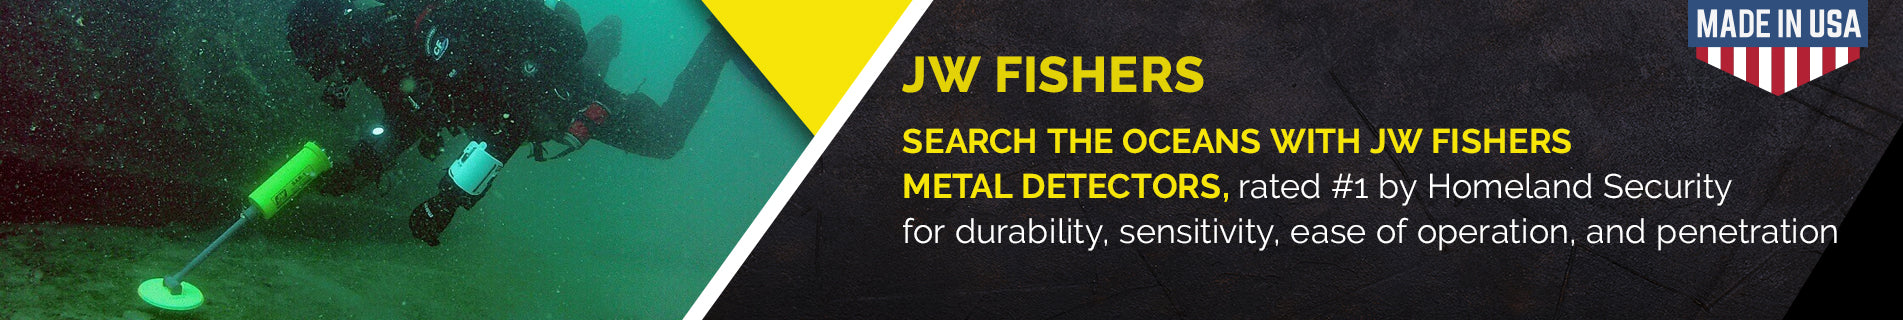 JW FISHERS Metal Detectors | Underwater Recovery | Scuba Diving